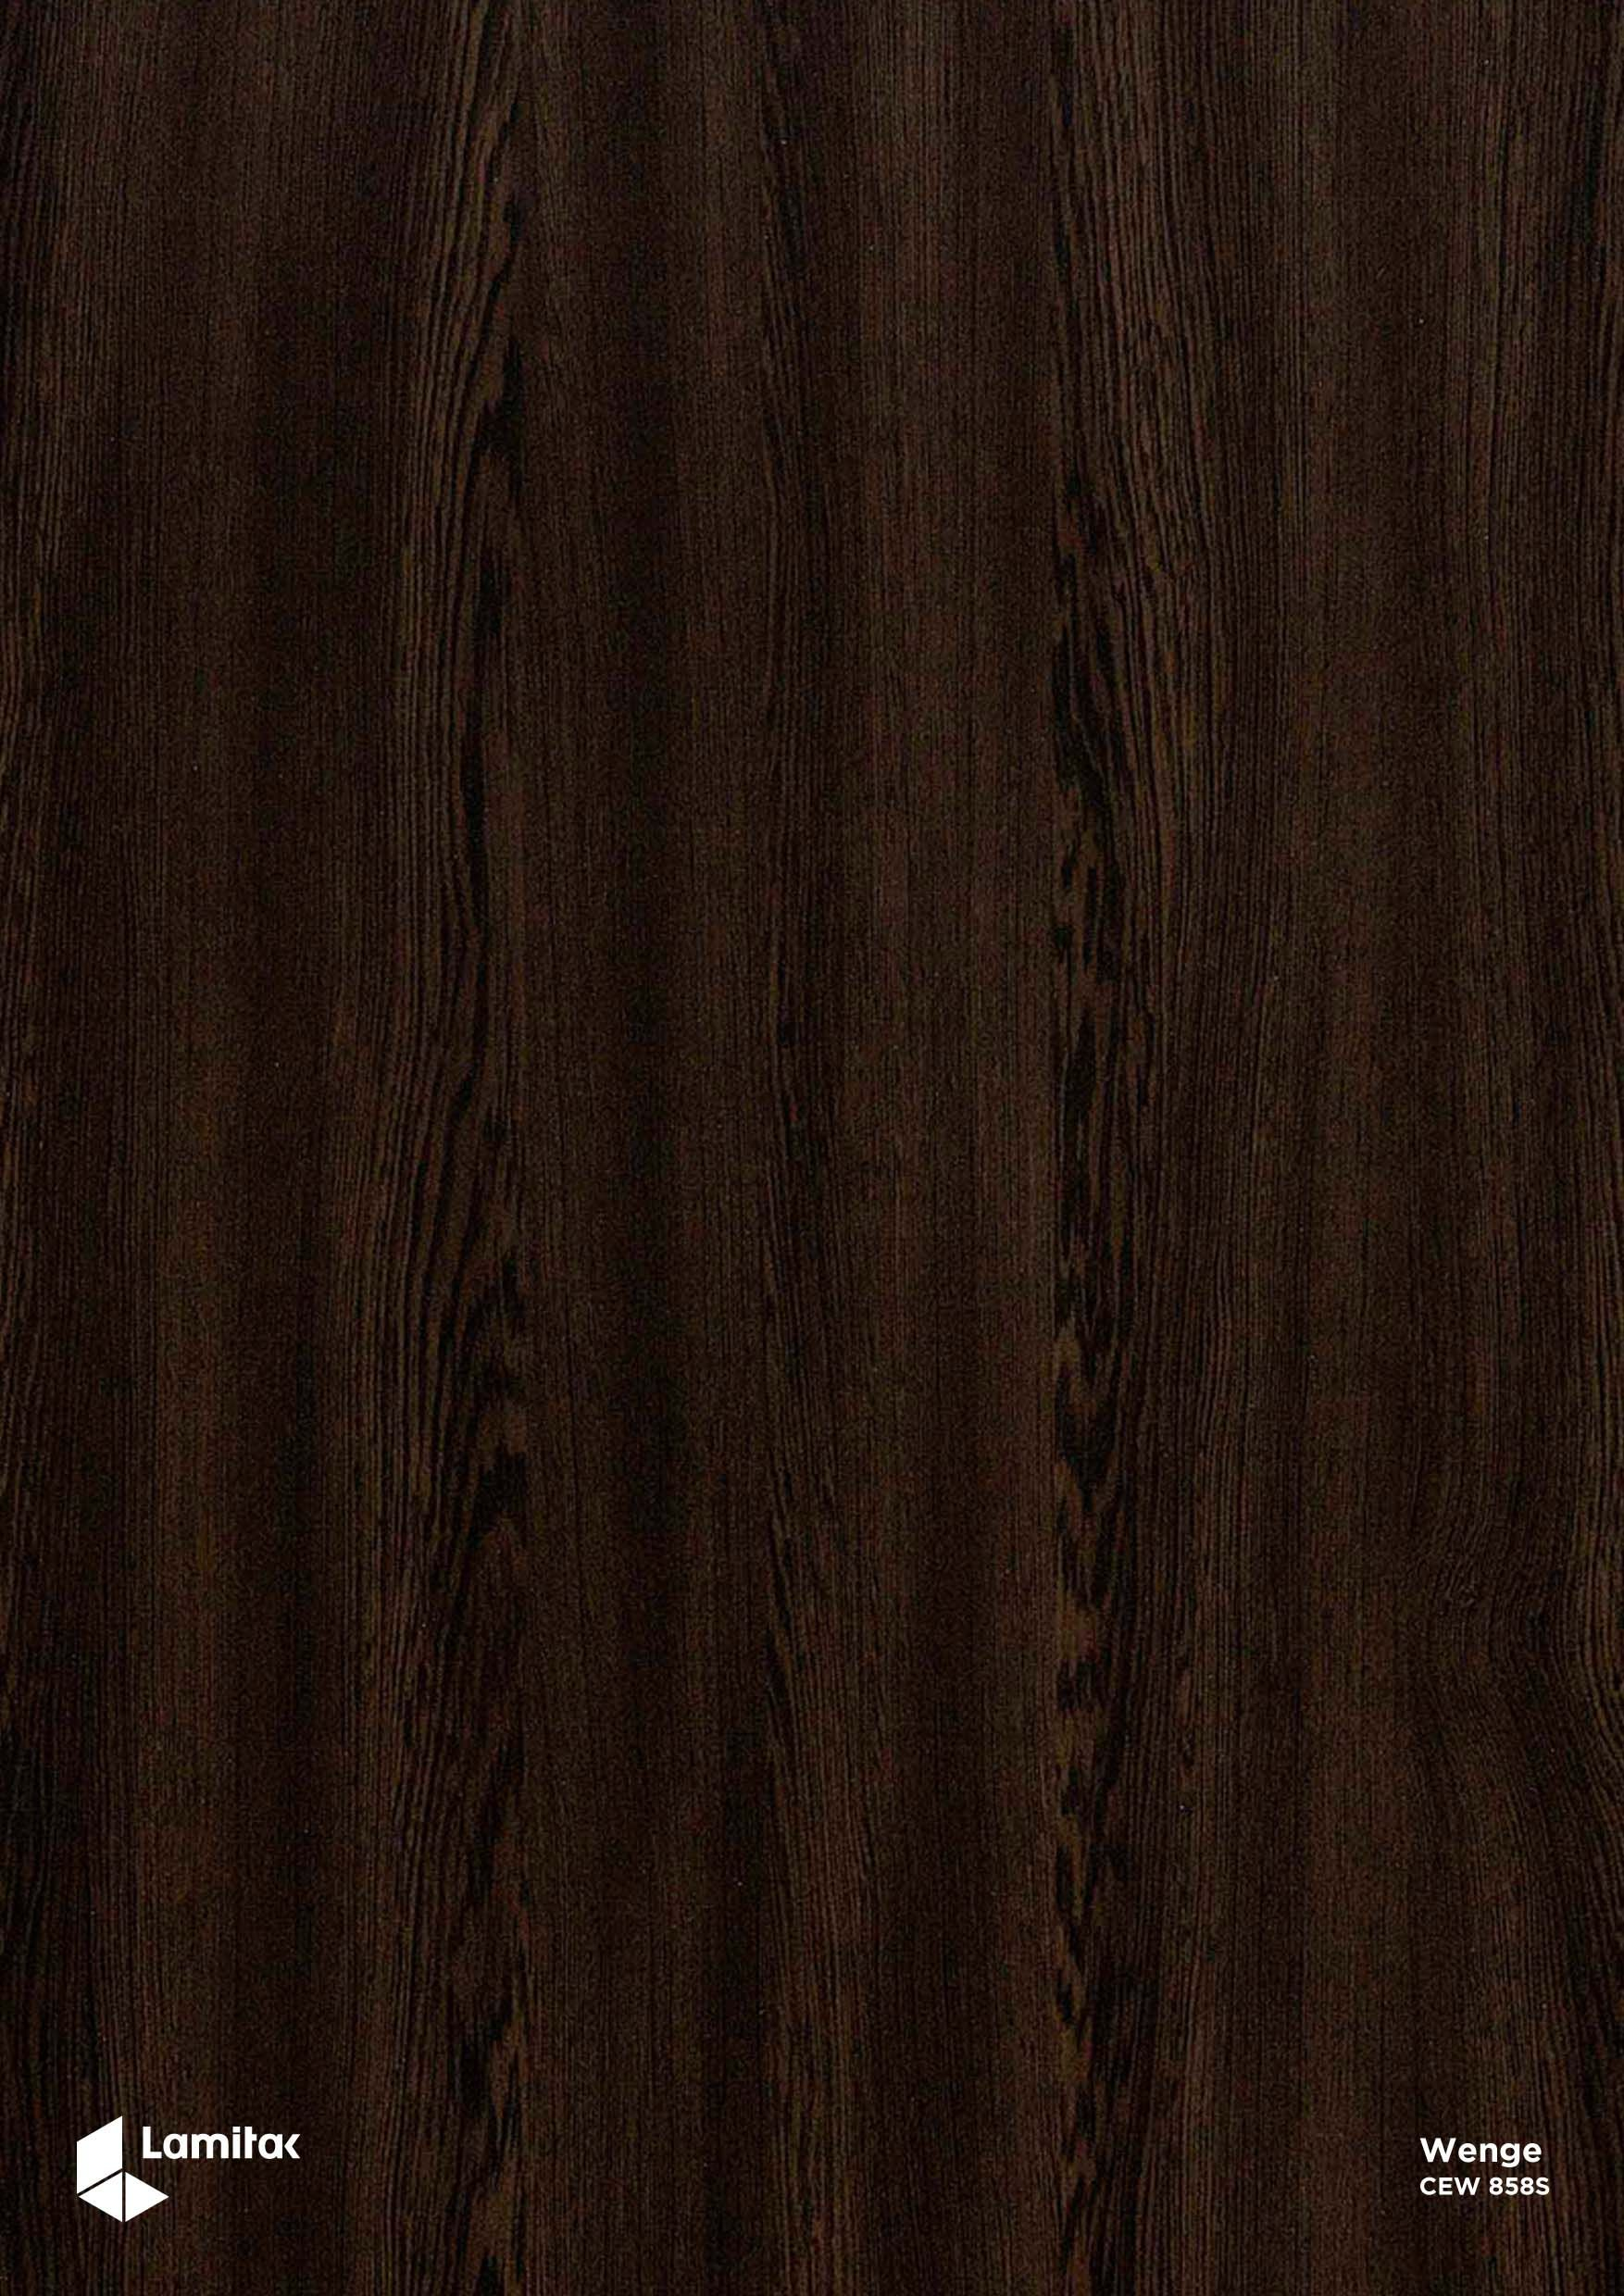 Wenge Cew 858s Woods Lamitak 2016 17 Collection In